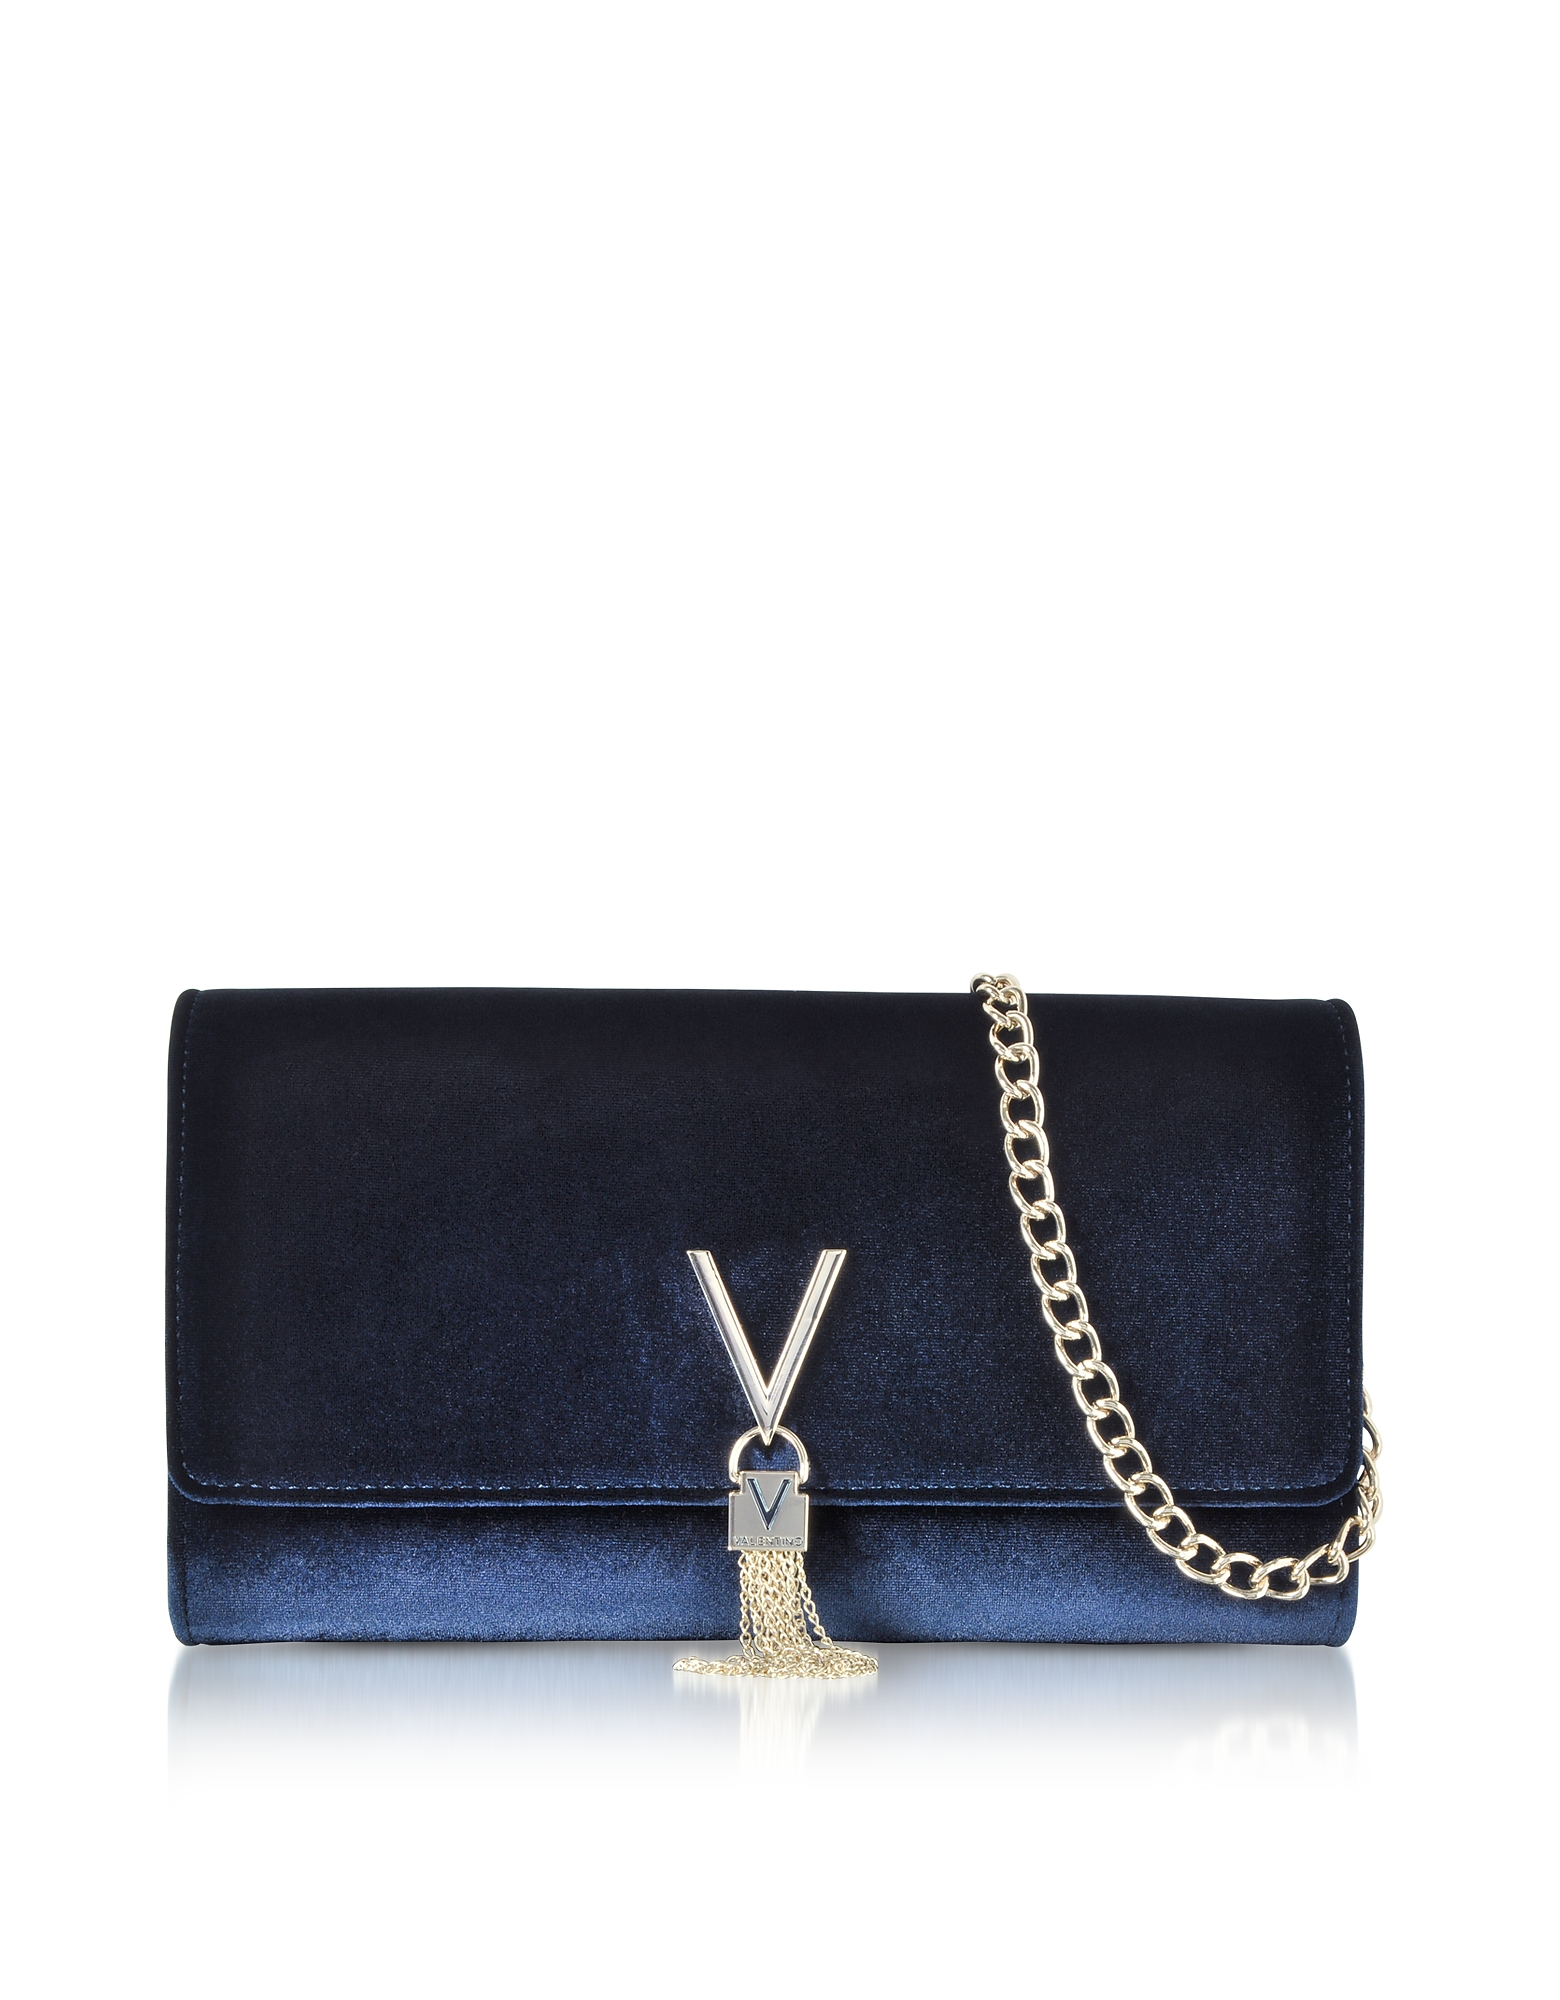 Valentino by Mario Valentino Handbags, Velvet Marilyn Shoulder Bag